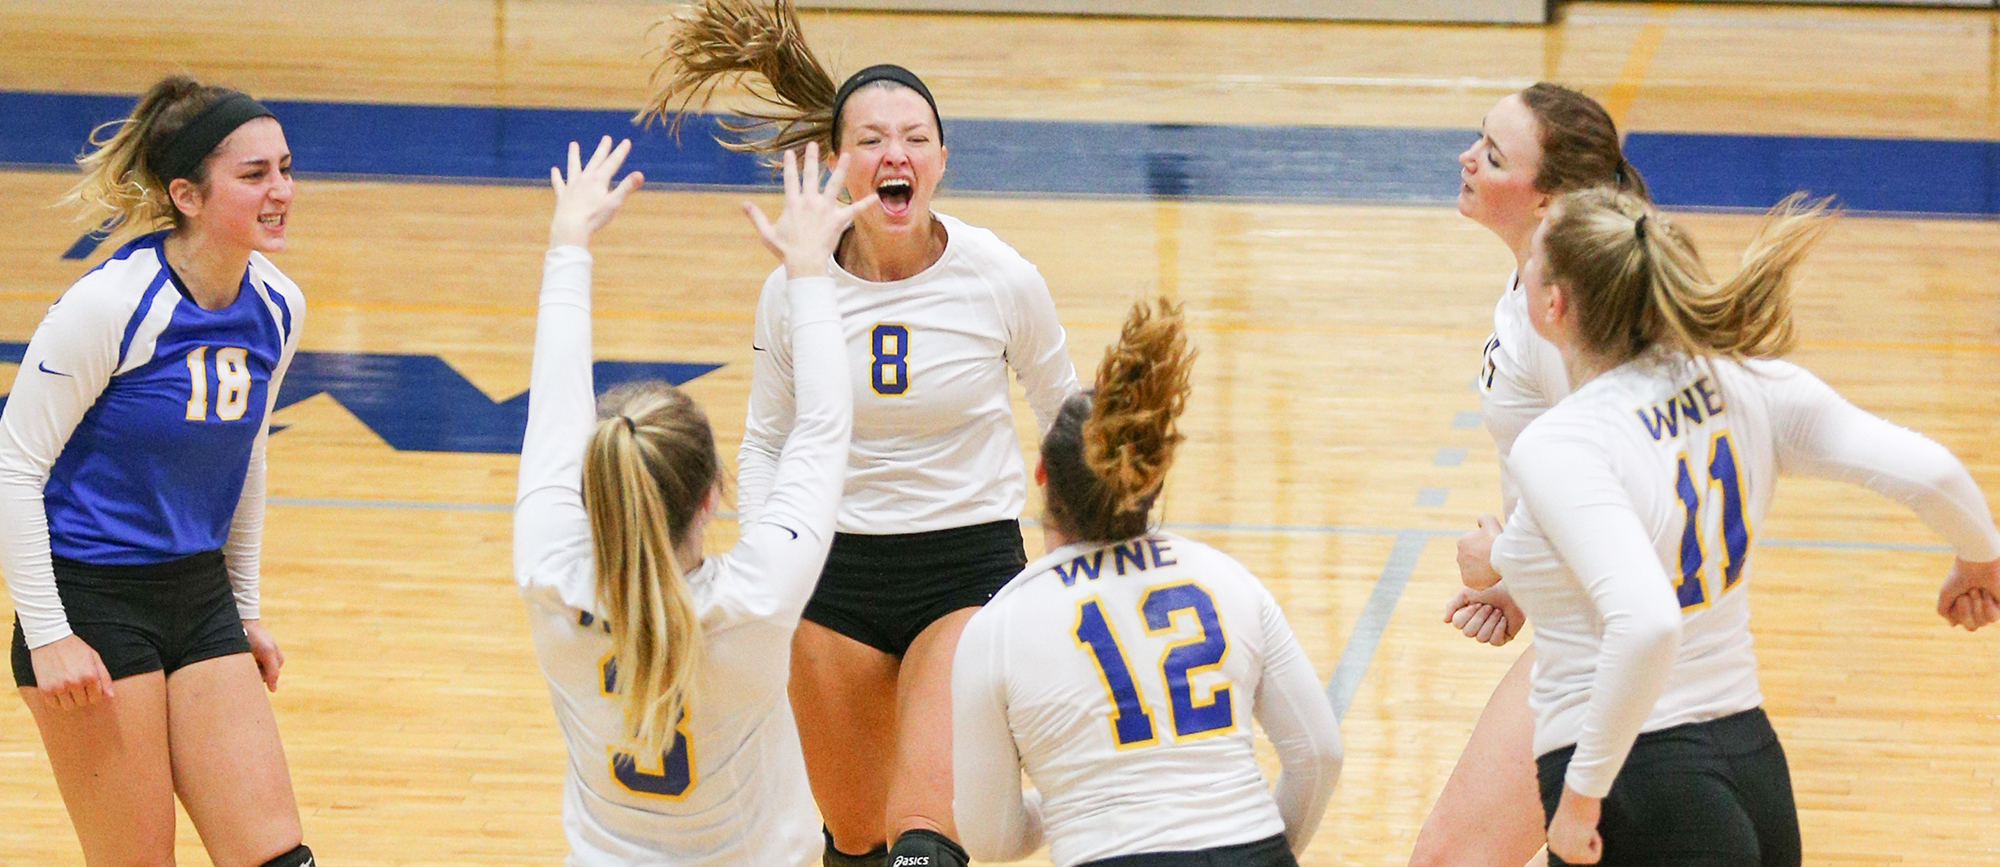 Western New England rallied from a 2-0 set deficit to defeat Emmanuel 3-2 on Thursday evening. (Photo by Chris Marion)